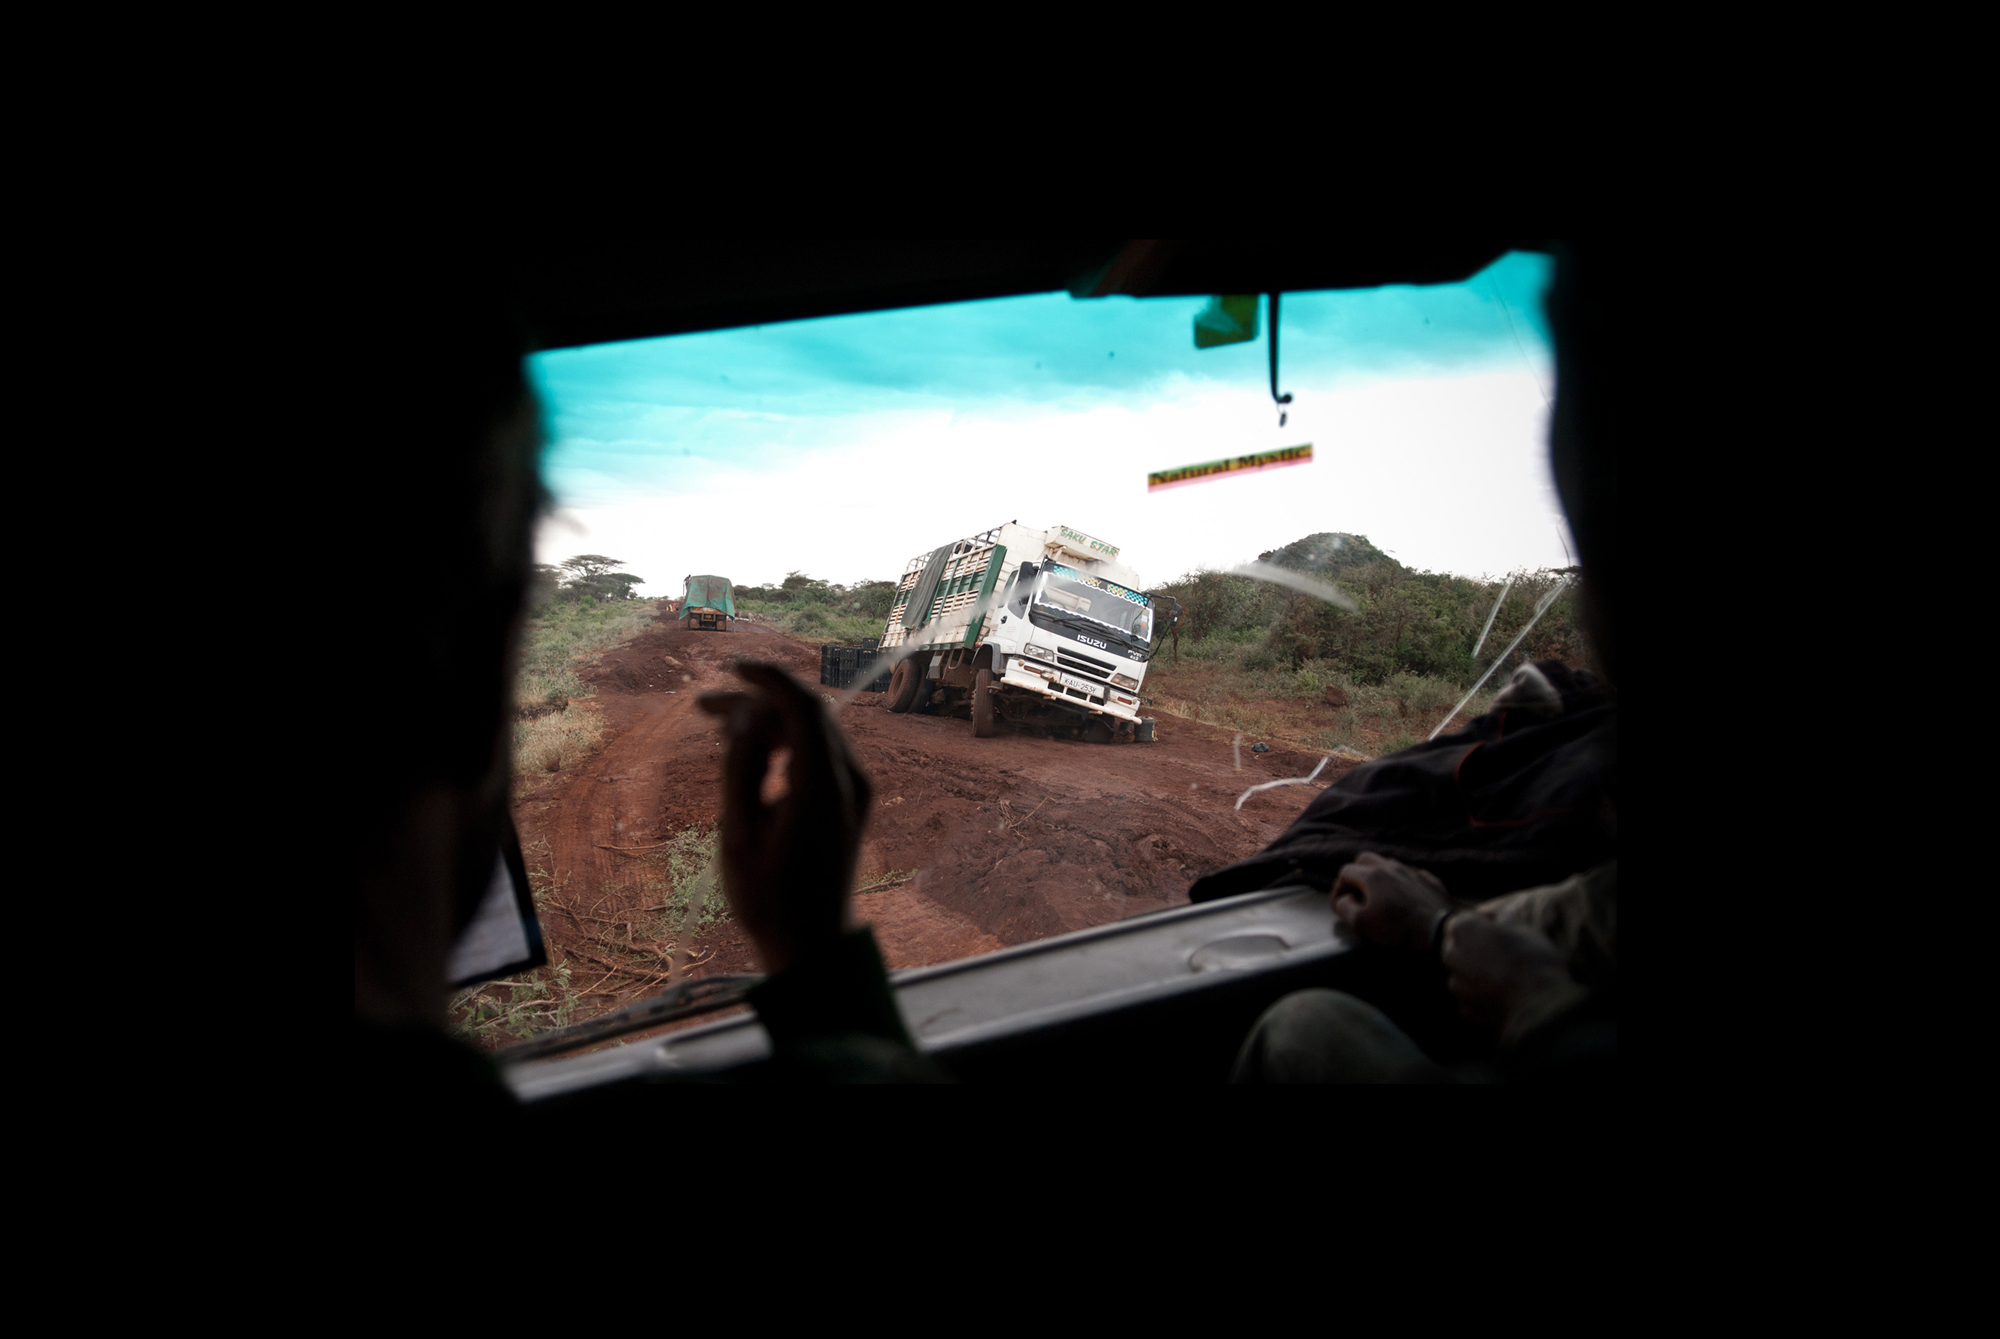 singles – difficult road conditions between marsabit and isiolo, northern kenya